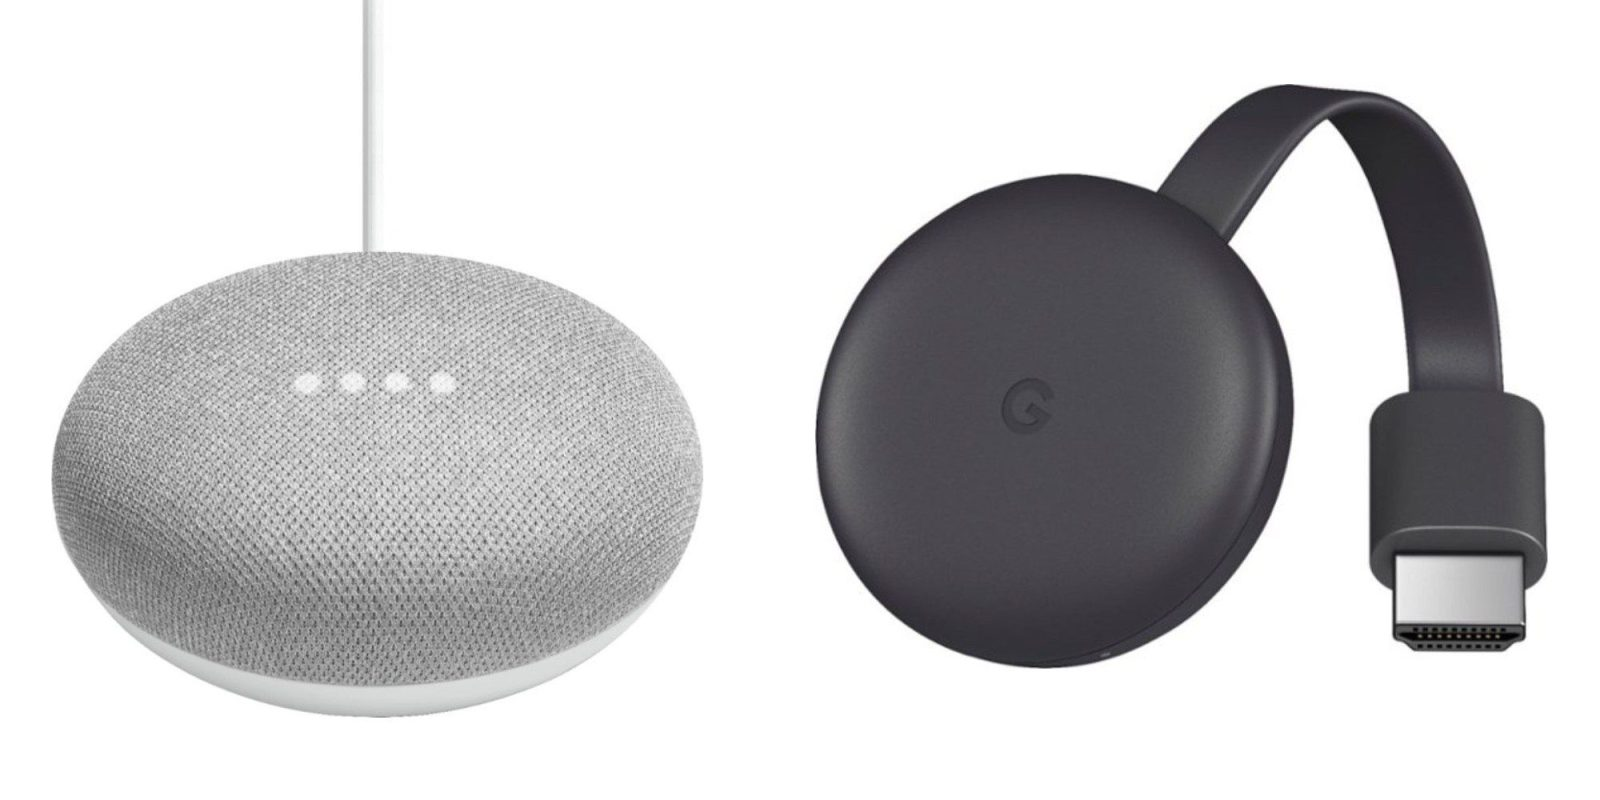 Chromecast and Google Home Mini bundled at $44, plus deals on Chromebooks, more